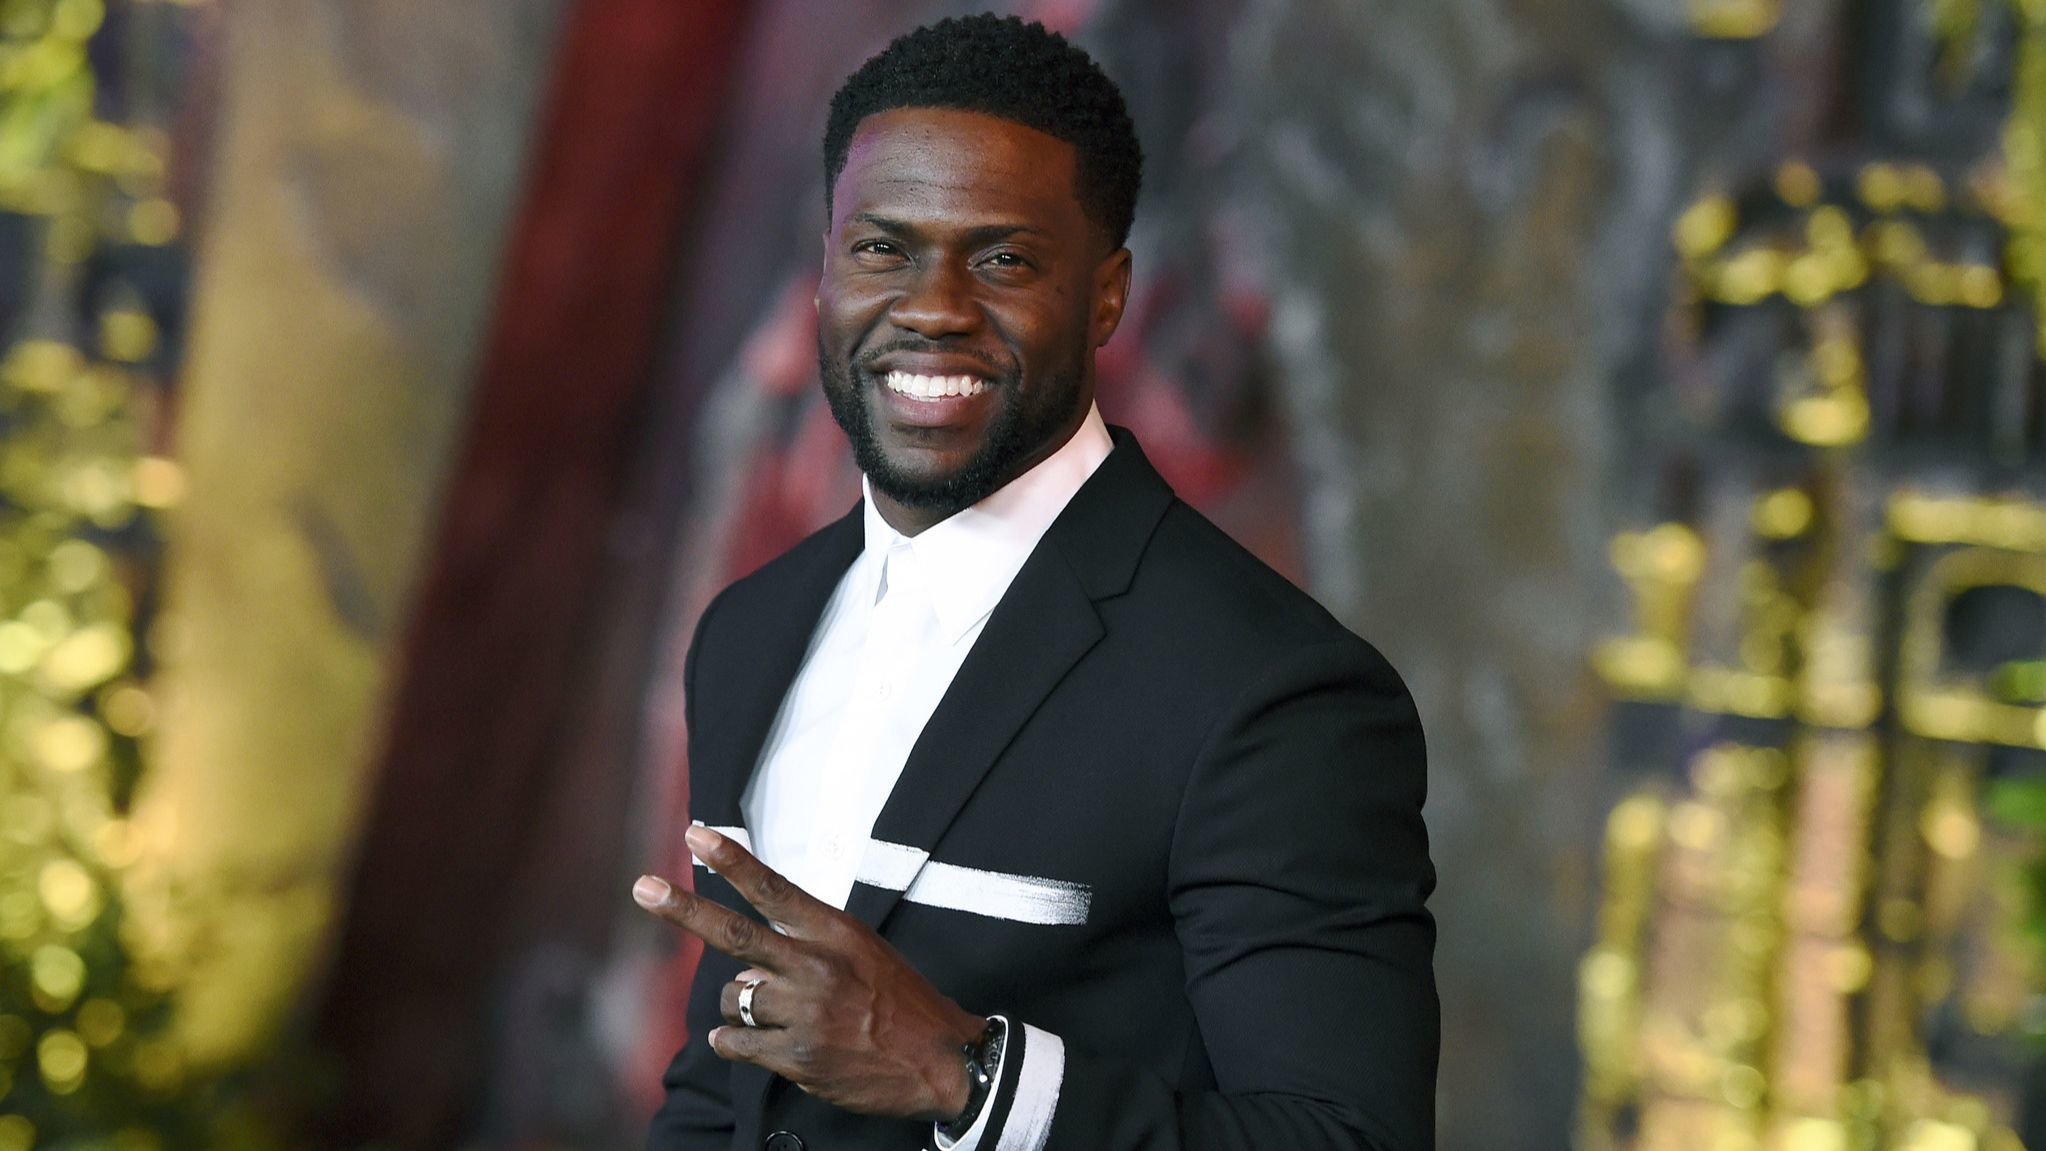 Kevin Hart steps down as 2019 Oscars host after backlash over past homophobic comments